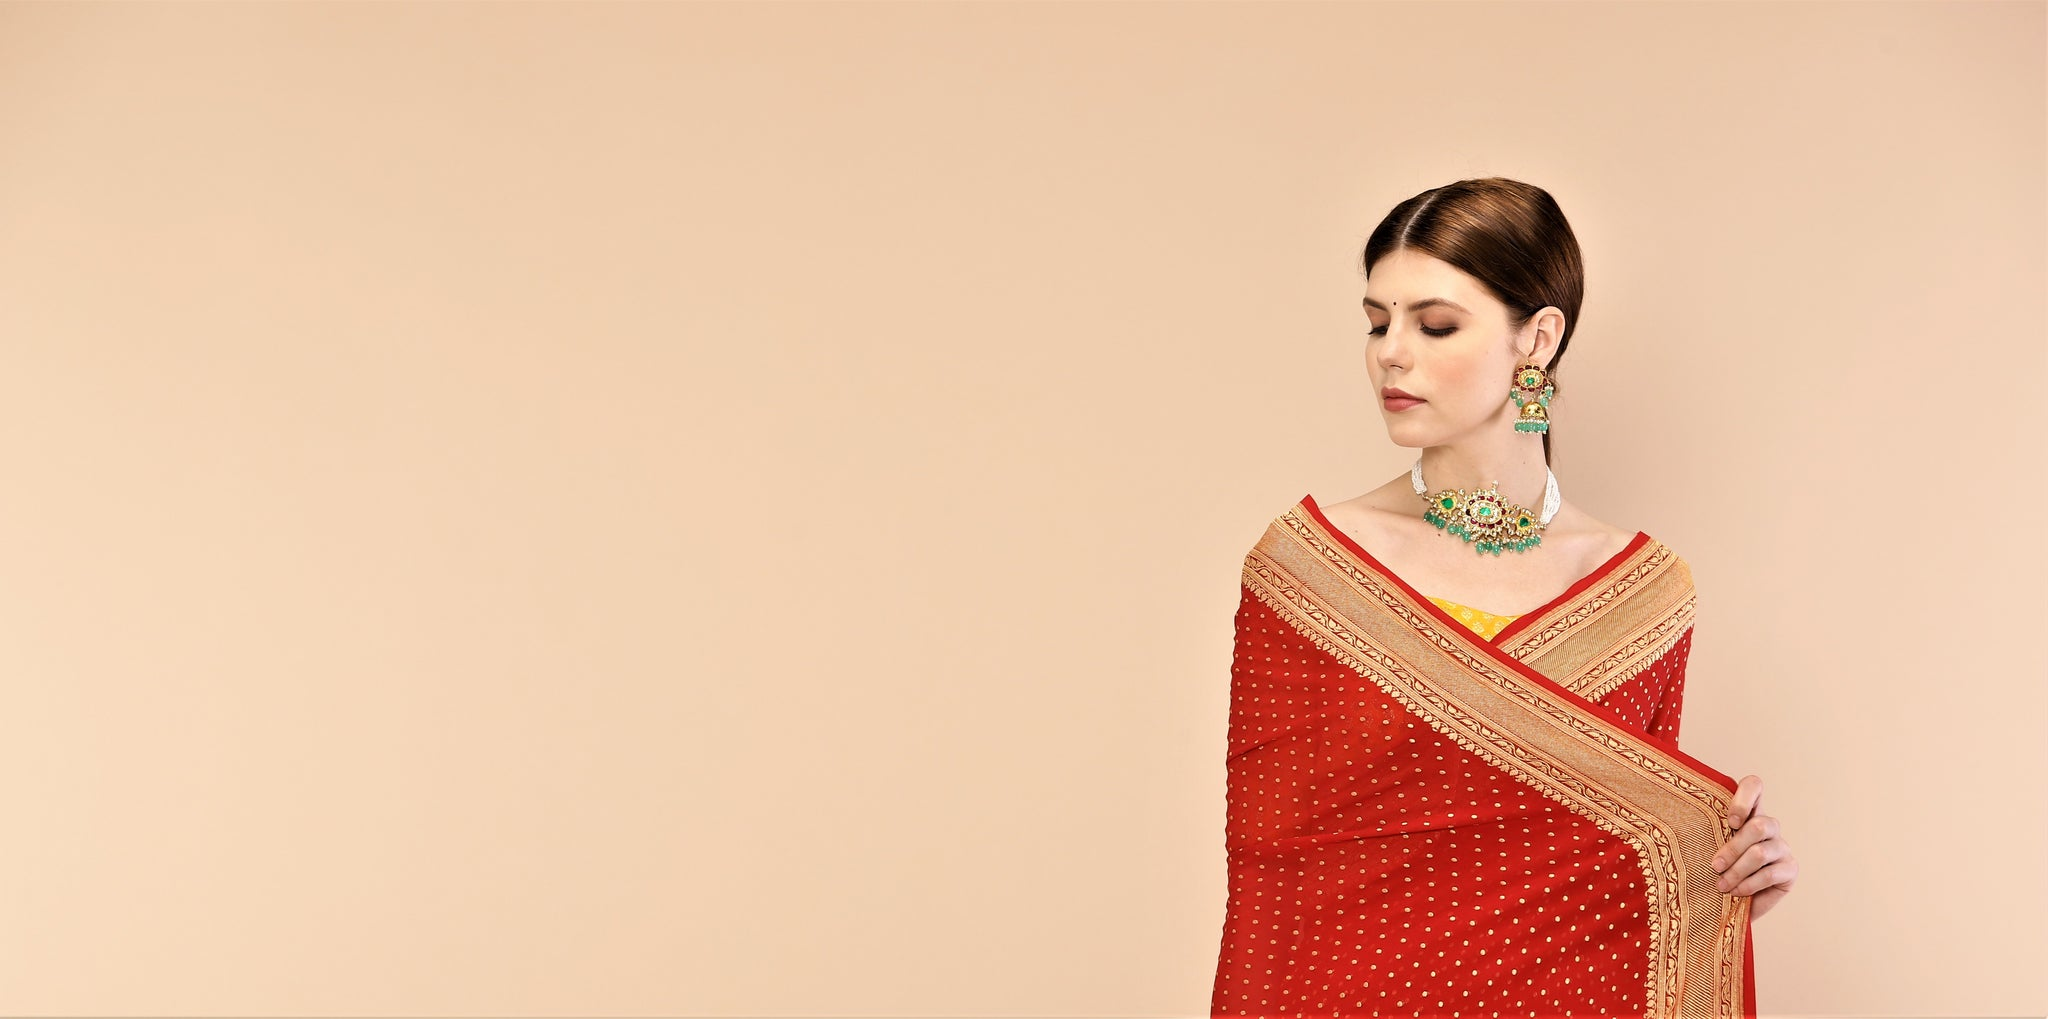 Tis the season of weddings! Tis the season for a Banarasi saree!